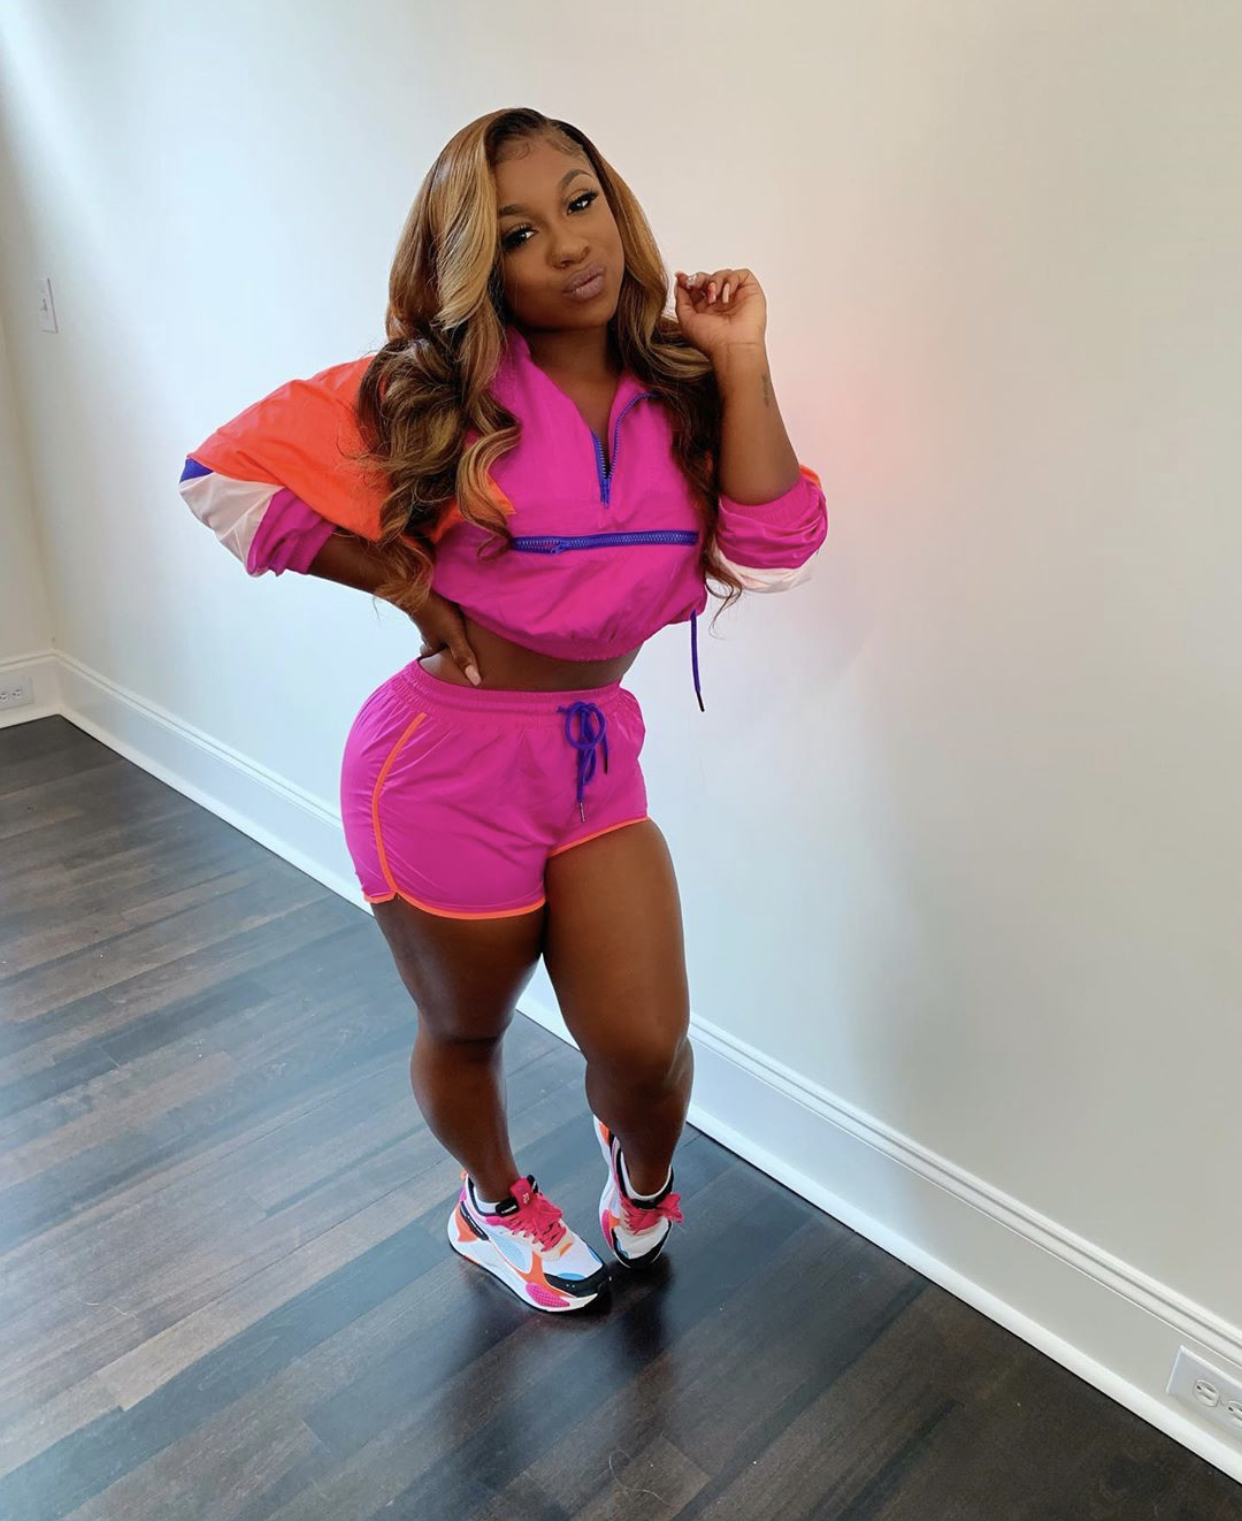 reginae-carter-wishes-a-happy-birthday-to-her-brother-kam-see-lil-waynes-sons-photo